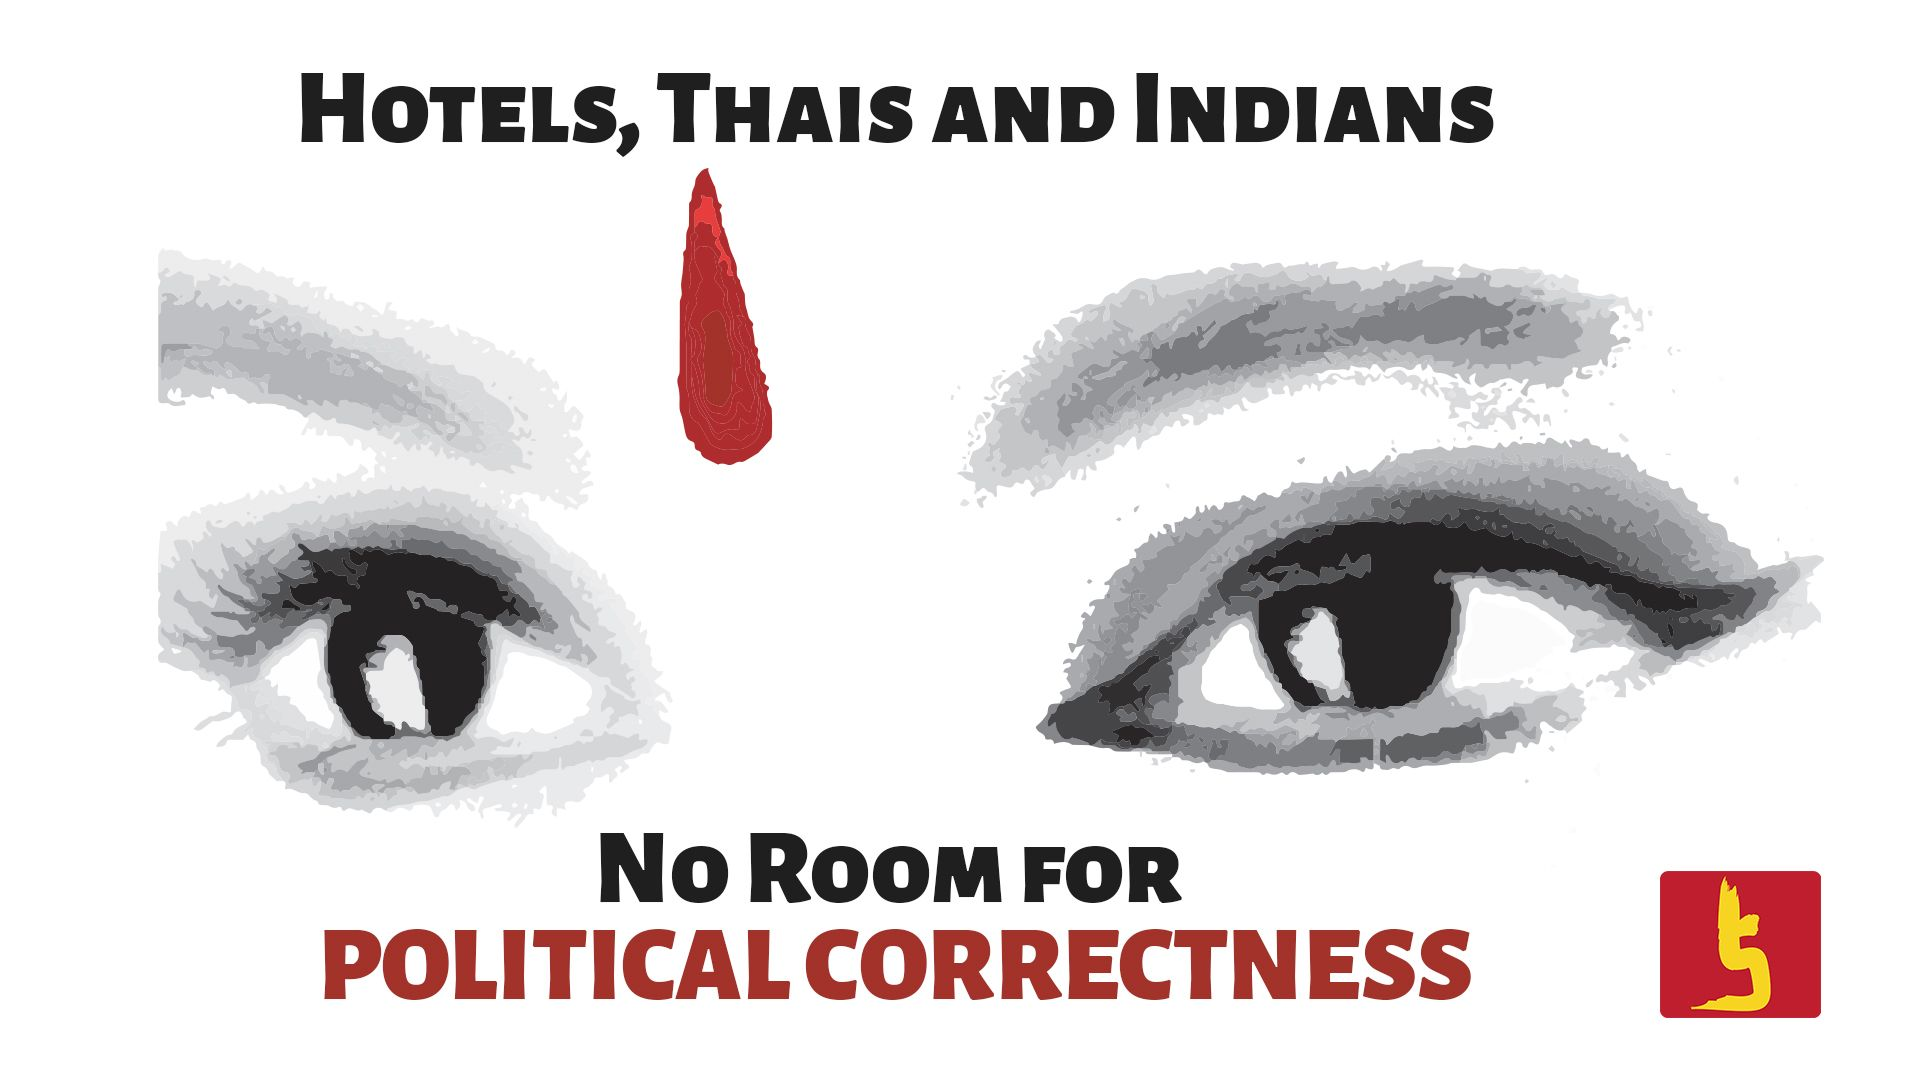 Hotels, Thais and Indians – No Room for Political Correctness